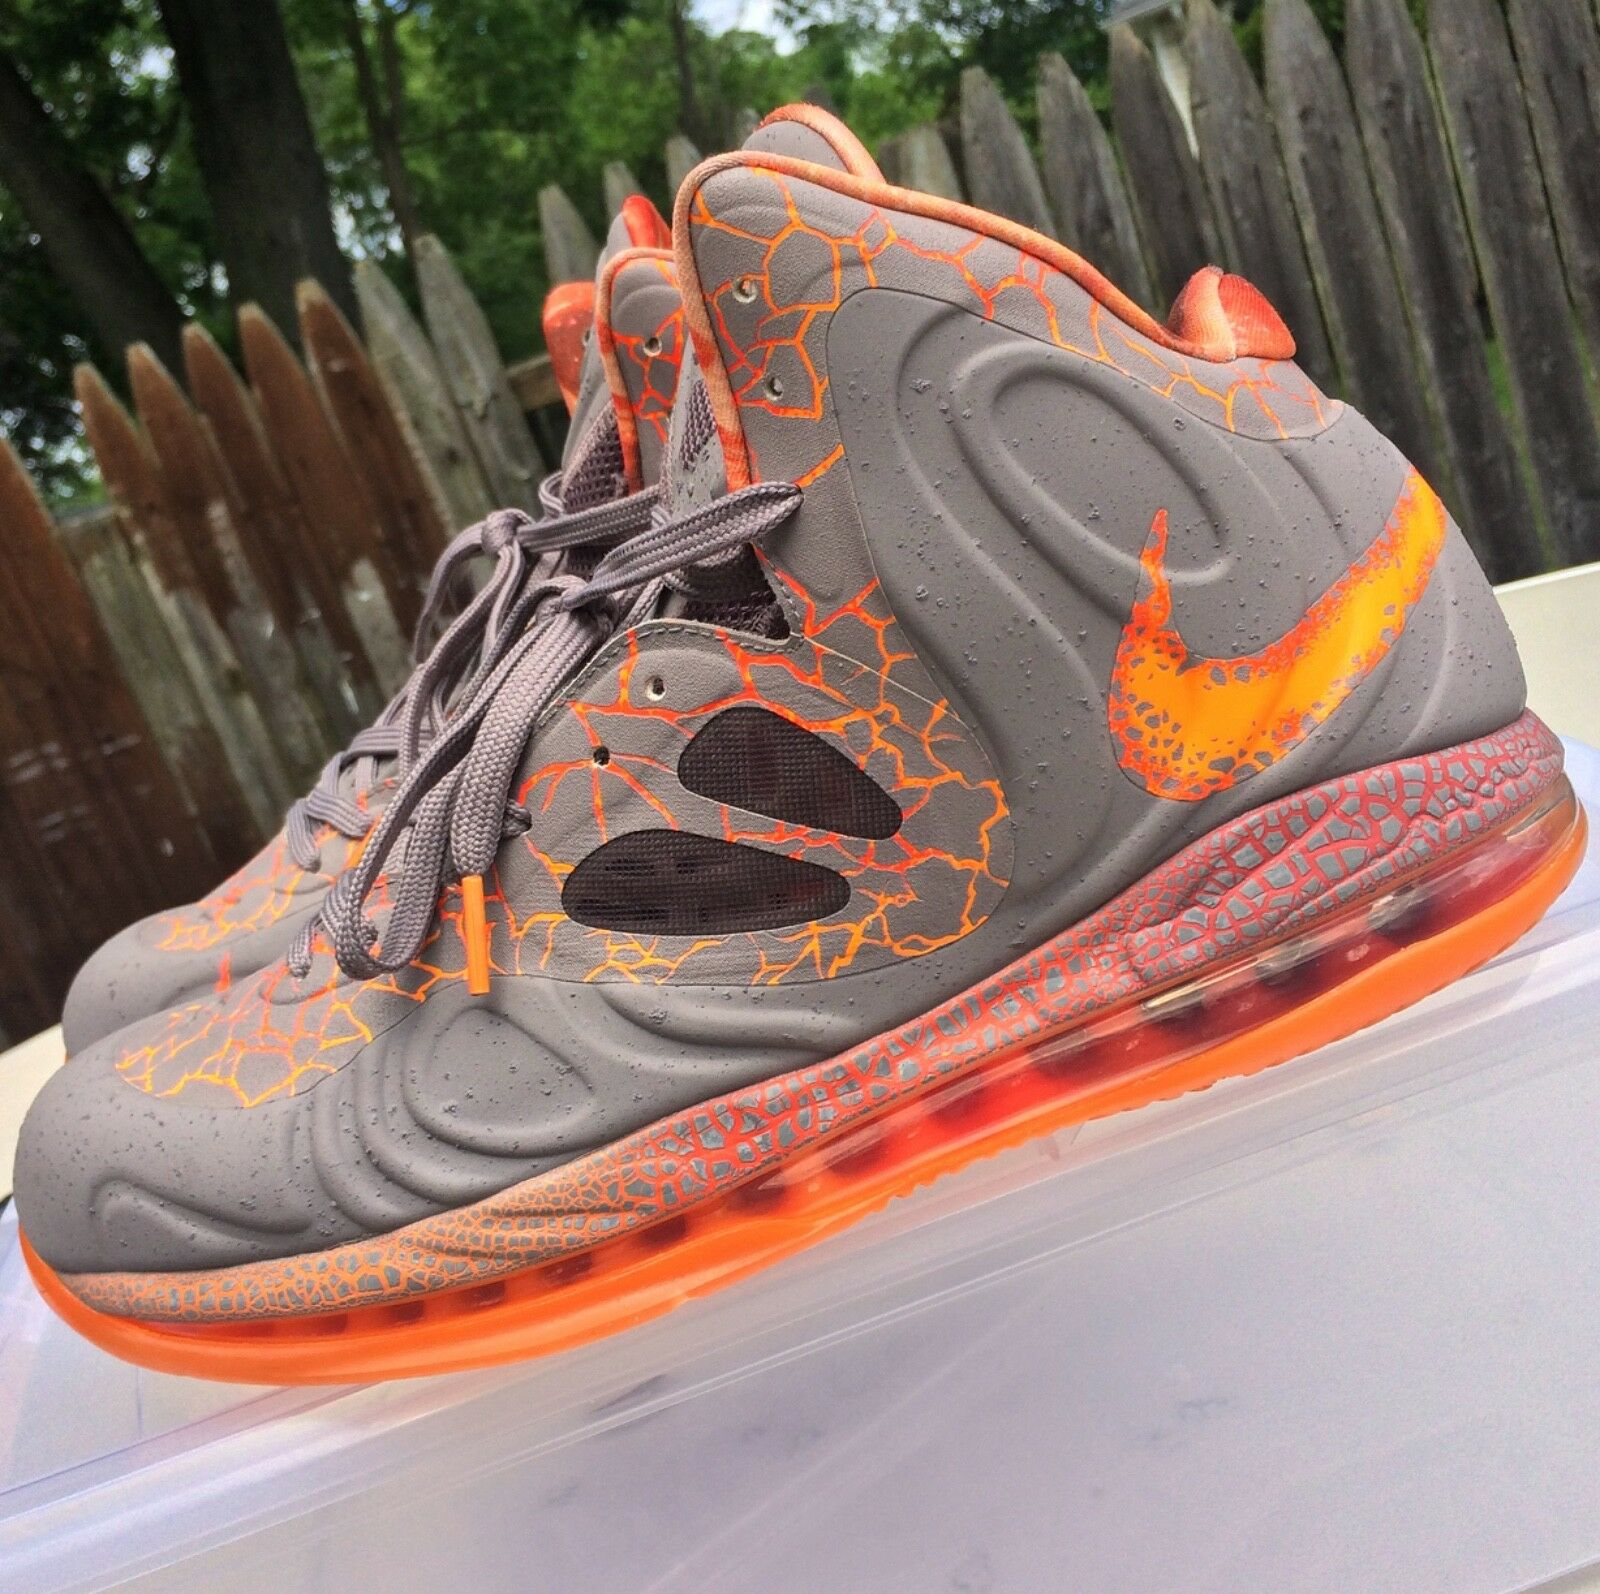 Nike Air Max Hyperposite AS Area 72 72 72 583113-200 Co.JP Foamposite 0f6213